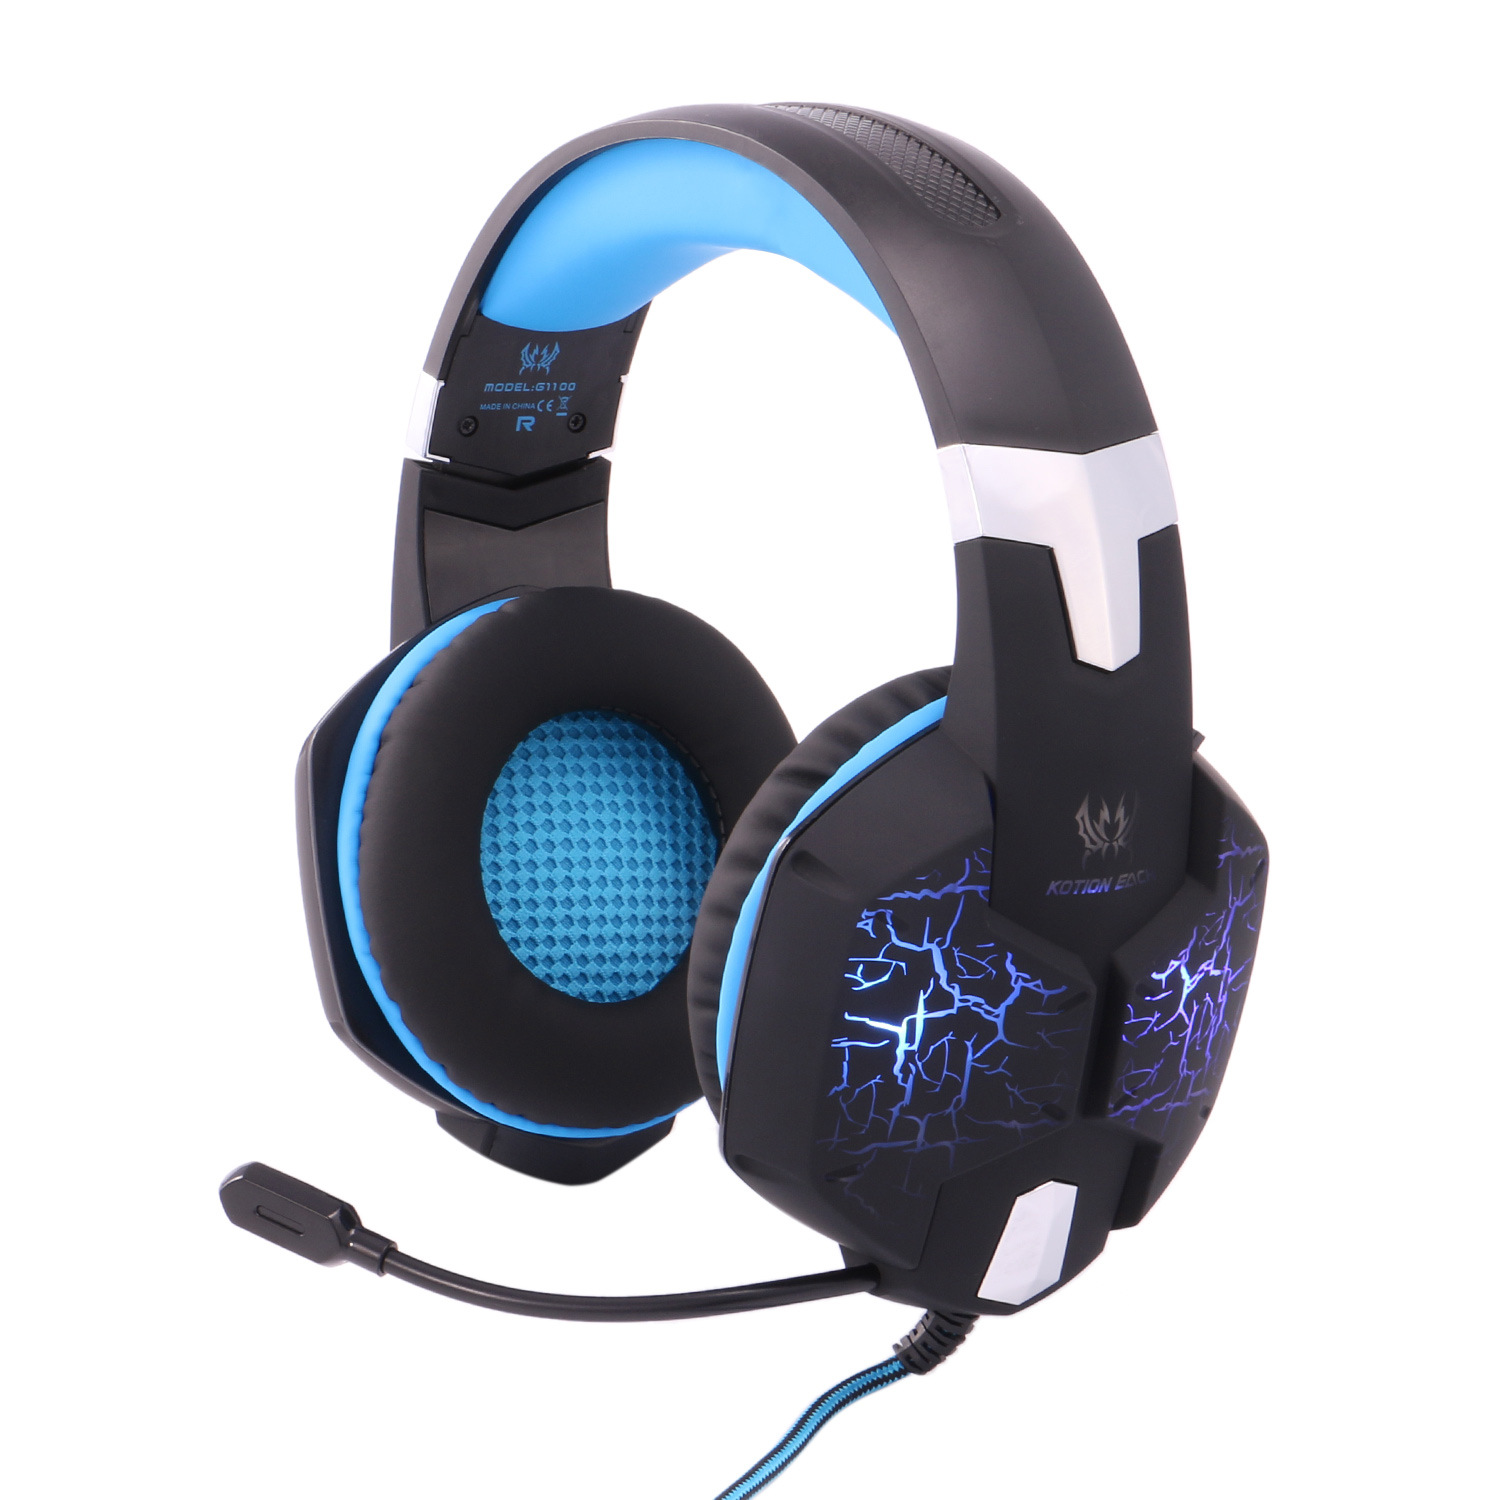 G1100 Vibration Function Professional Gaming Headphone Games Headset With Mic Stereo Bass Breathing LED Light For PC Gamer plextone stereo game headsets vibration bass computer gaming headphone with breathing led light mic for pc gamer